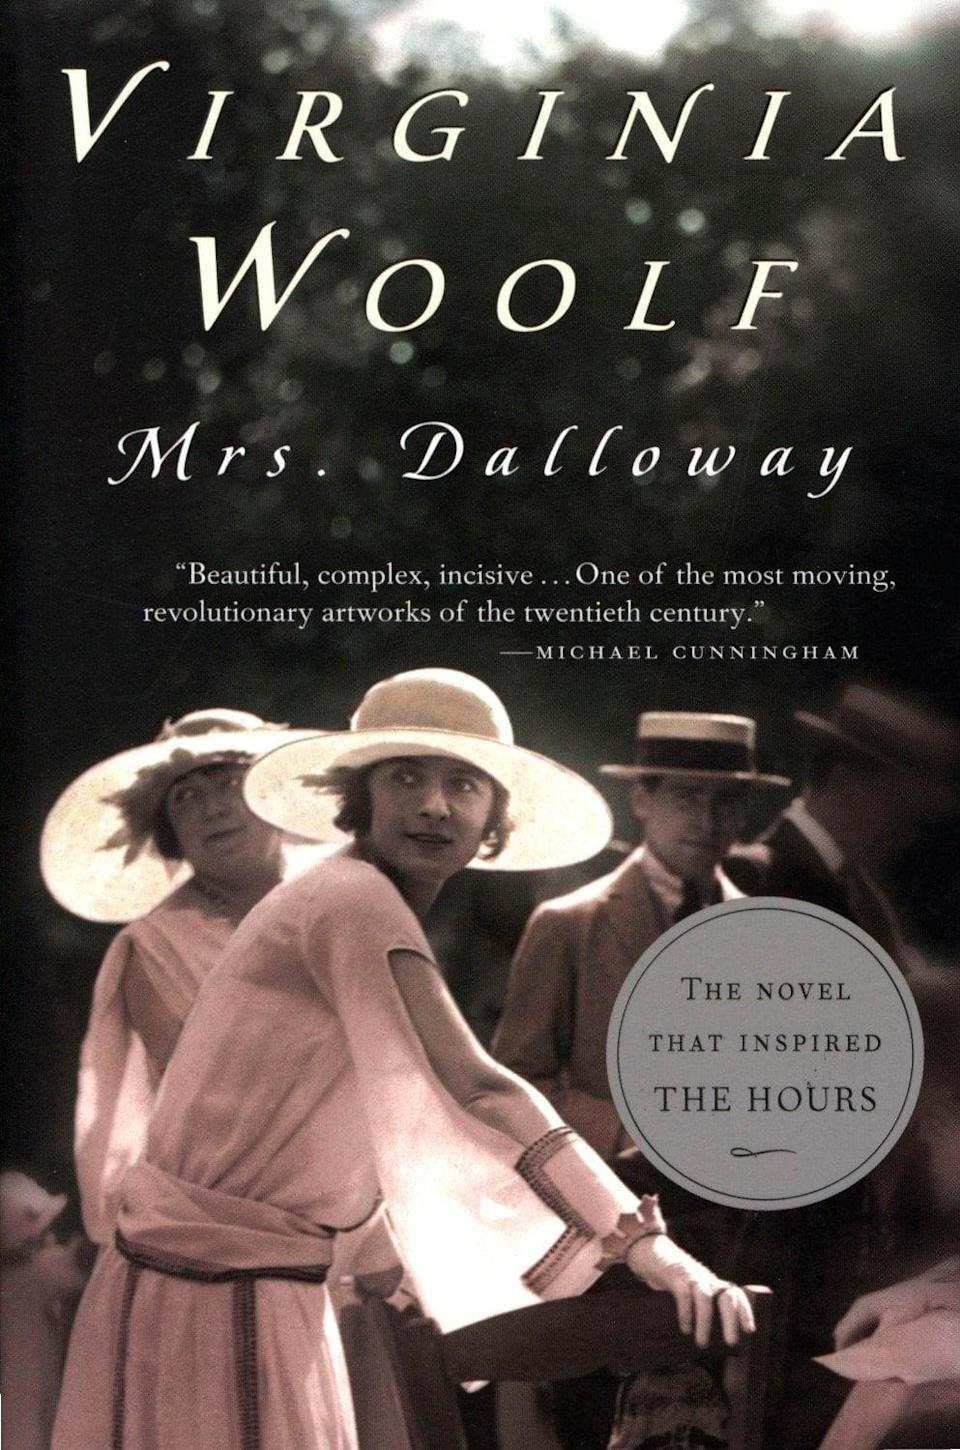 "<p><a href=""https://www.popsugar.com/buy?url=https%3A%2F%2Fwww.amazon.com%2FMrs-Dalloway-Virginia-Woolf%2Fdp%2F0156628708%2Fref%3Dtmm_pap_swatch_0%3F_encoding%3DUTF8%26qid%3D1488934502%26sr%3D1-1&p_name=%3Cb%3EMrs.%20Dalloway%3C%2Fb%3E%20by%20Virginia%20Woolf&retailer=amazon.com&evar1=tres%3Auk&evar9=43250262&evar98=https%3A%2F%2Fwww.popsugar.com%2Flove%2Fphoto-gallery%2F43250262%2Fimage%2F43252274%2FMrs-Dalloway-Virginia-Woolf&list1=books%2Cwomen%2Creading%2Cinternational%20womens%20day%2Cwomens%20history%20month&prop13=api&pdata=1"" class=""link rapid-noclick-resp"" rel=""nofollow noopener"" target=""_blank"" data-ylk=""slk:Mrs. Dalloway by Virginia Woolf""><b>Mrs. Dalloway</b> by Virginia Woolf</a></p>"